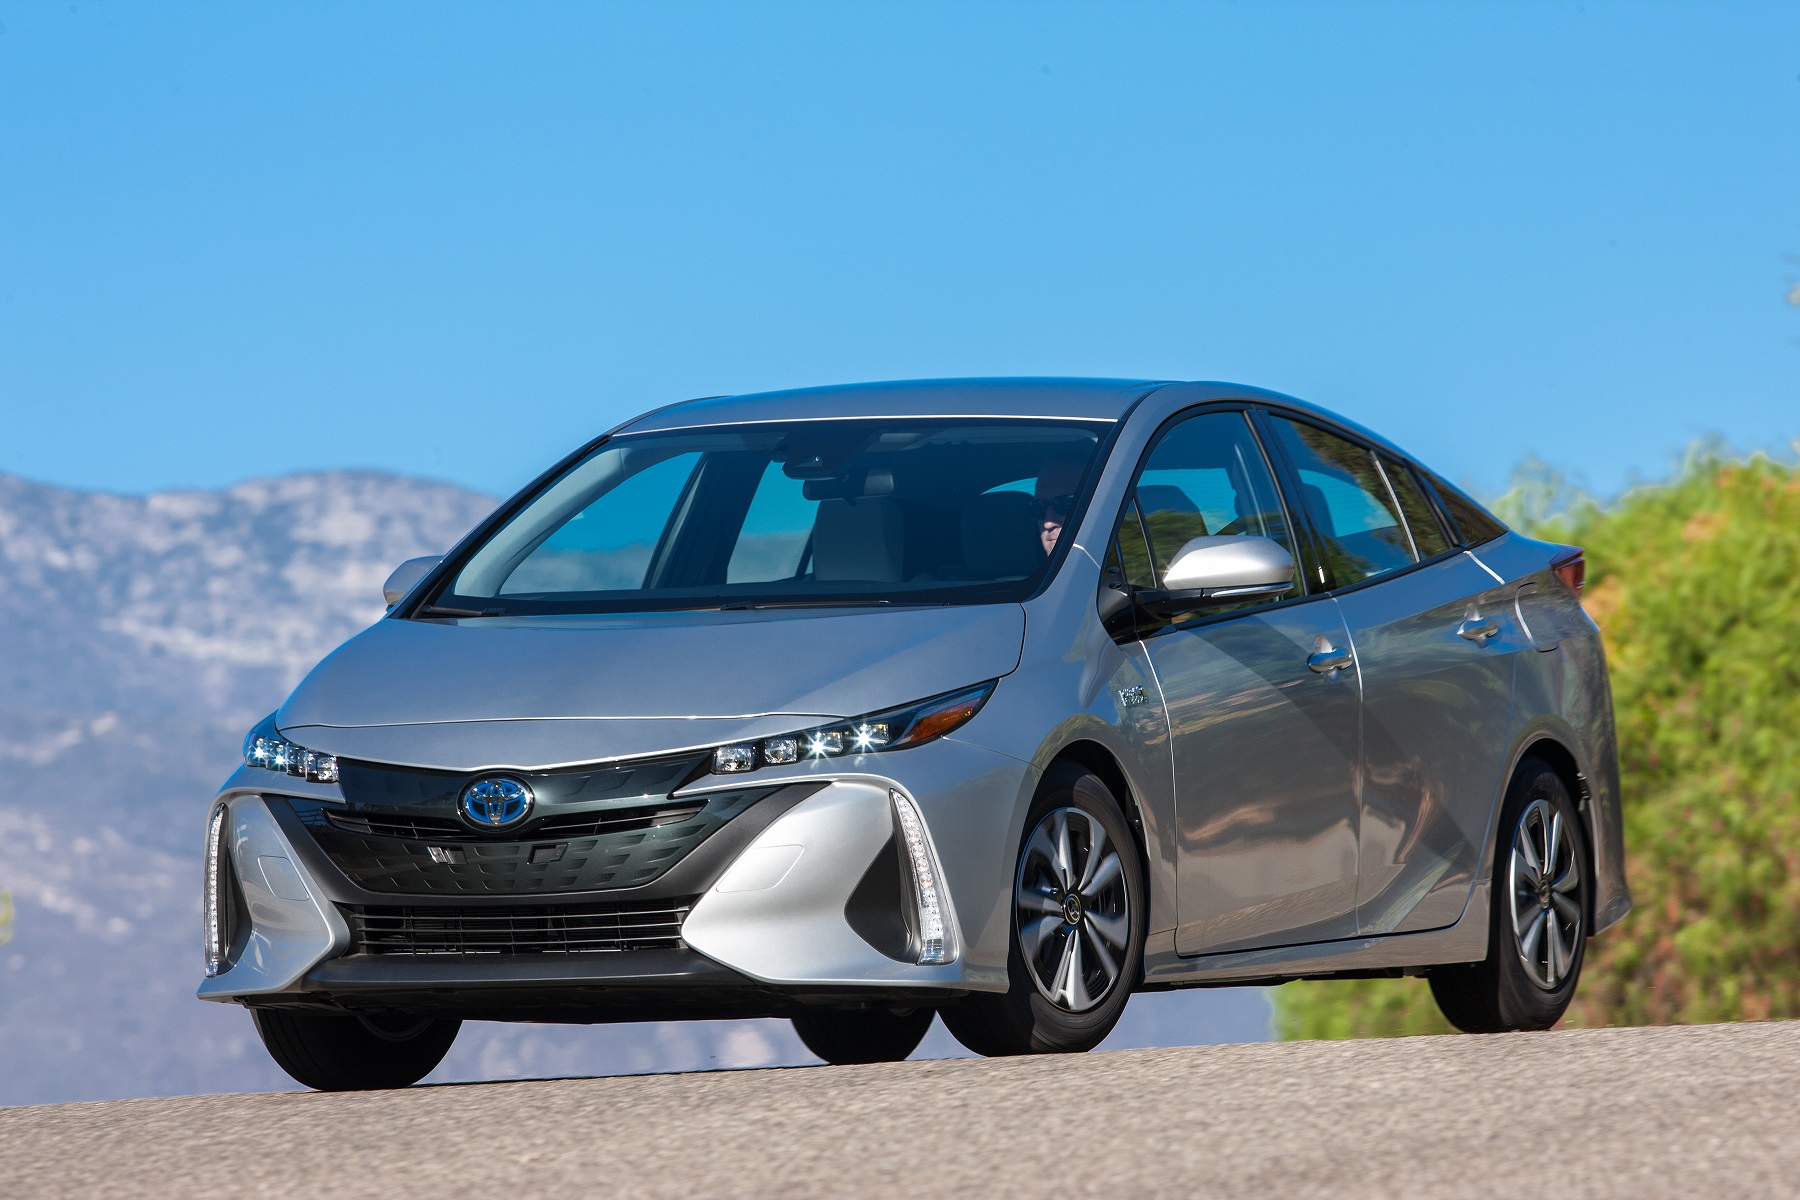 Manufacturer photo: Among the new 2017 vehicles competing for Car of the Year, Truck of the Year and Utility Vehicle of the Year are the Toyota Prius Prime, Ford Super Duty and the Audi Q7, respectively.